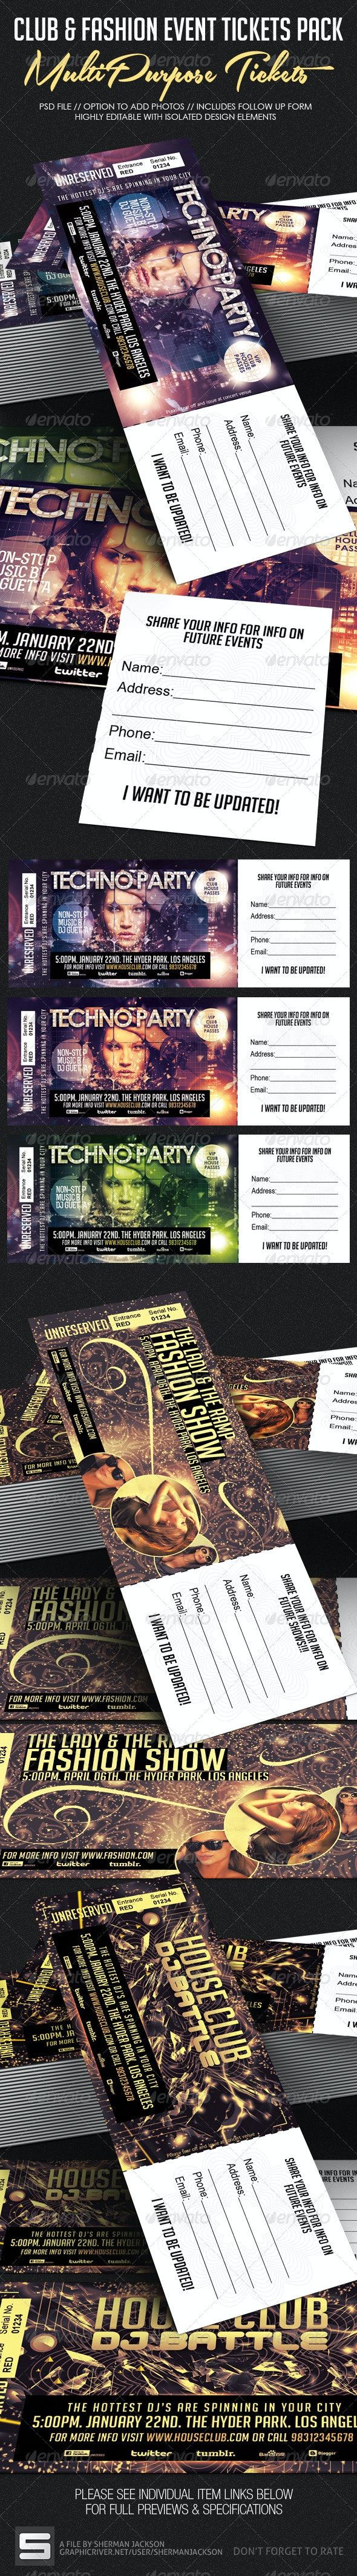 Club, Fashion & Event Tickets Bundle Pack - Miscellaneous Print Templates